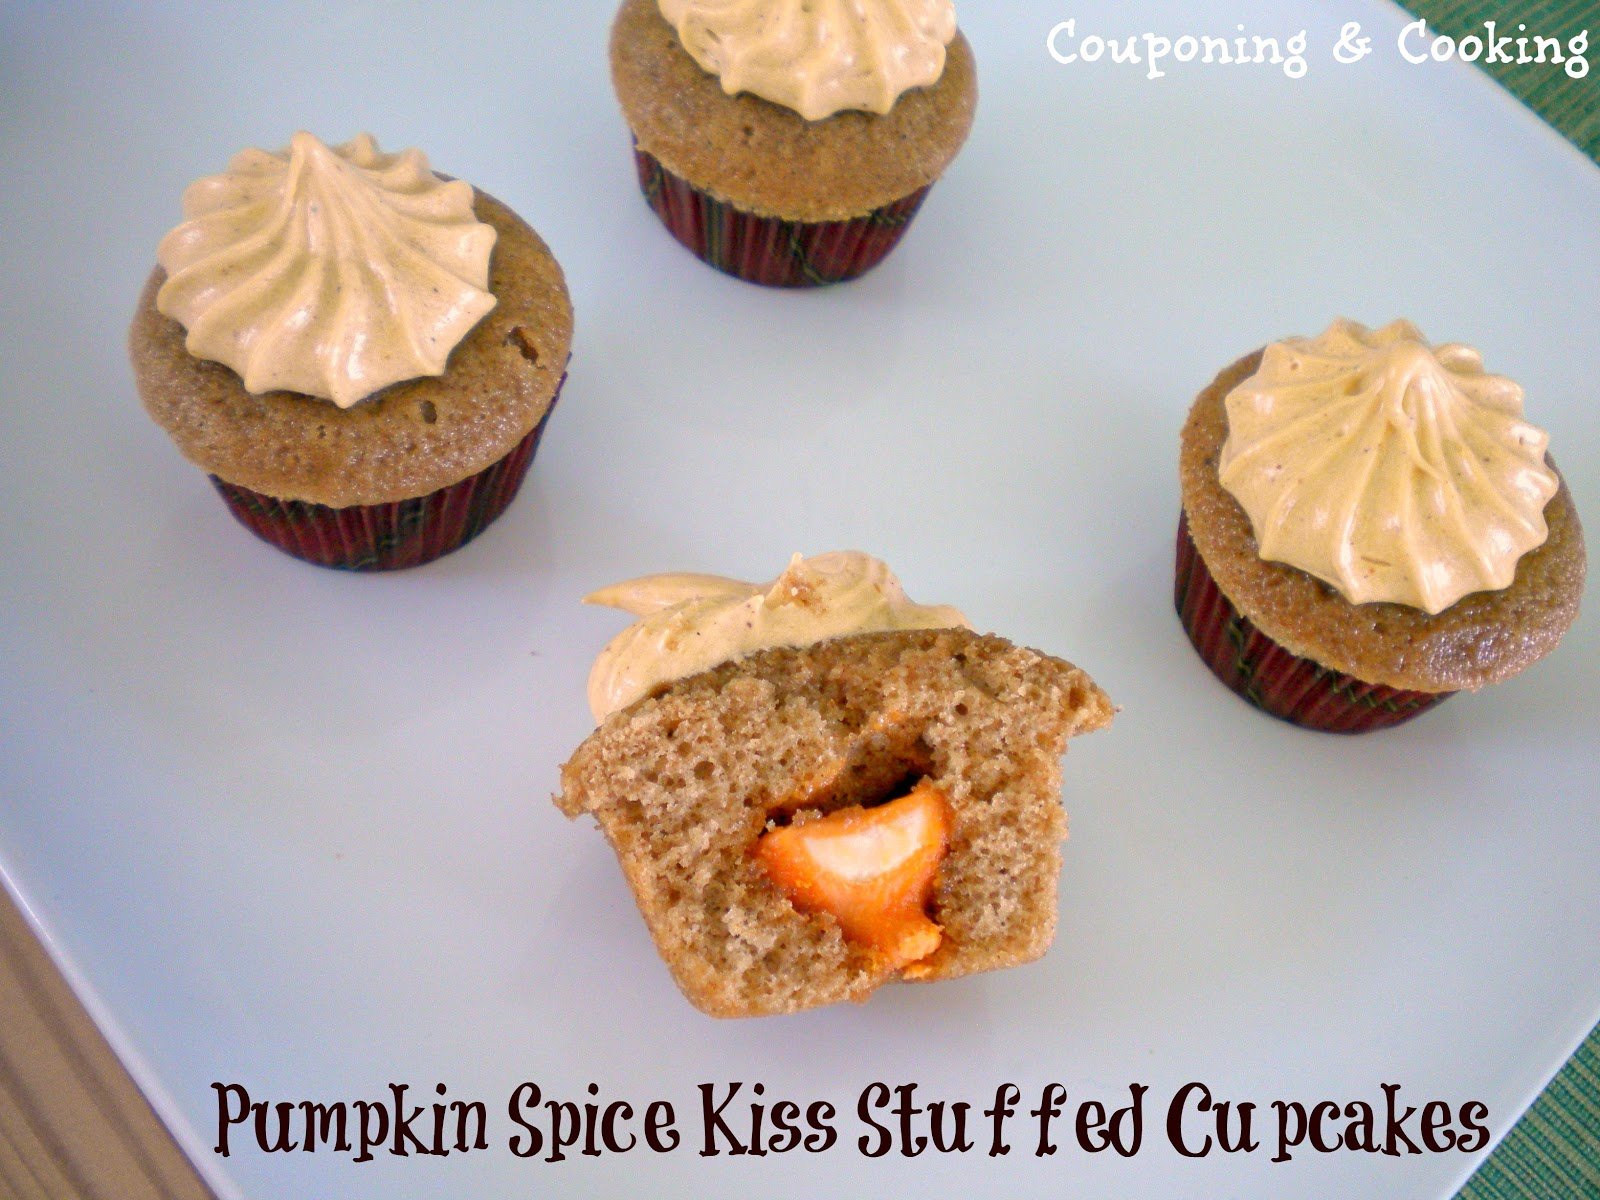 Couponing & Cooking: Ultimate Pumpkin Spice Cupcakes